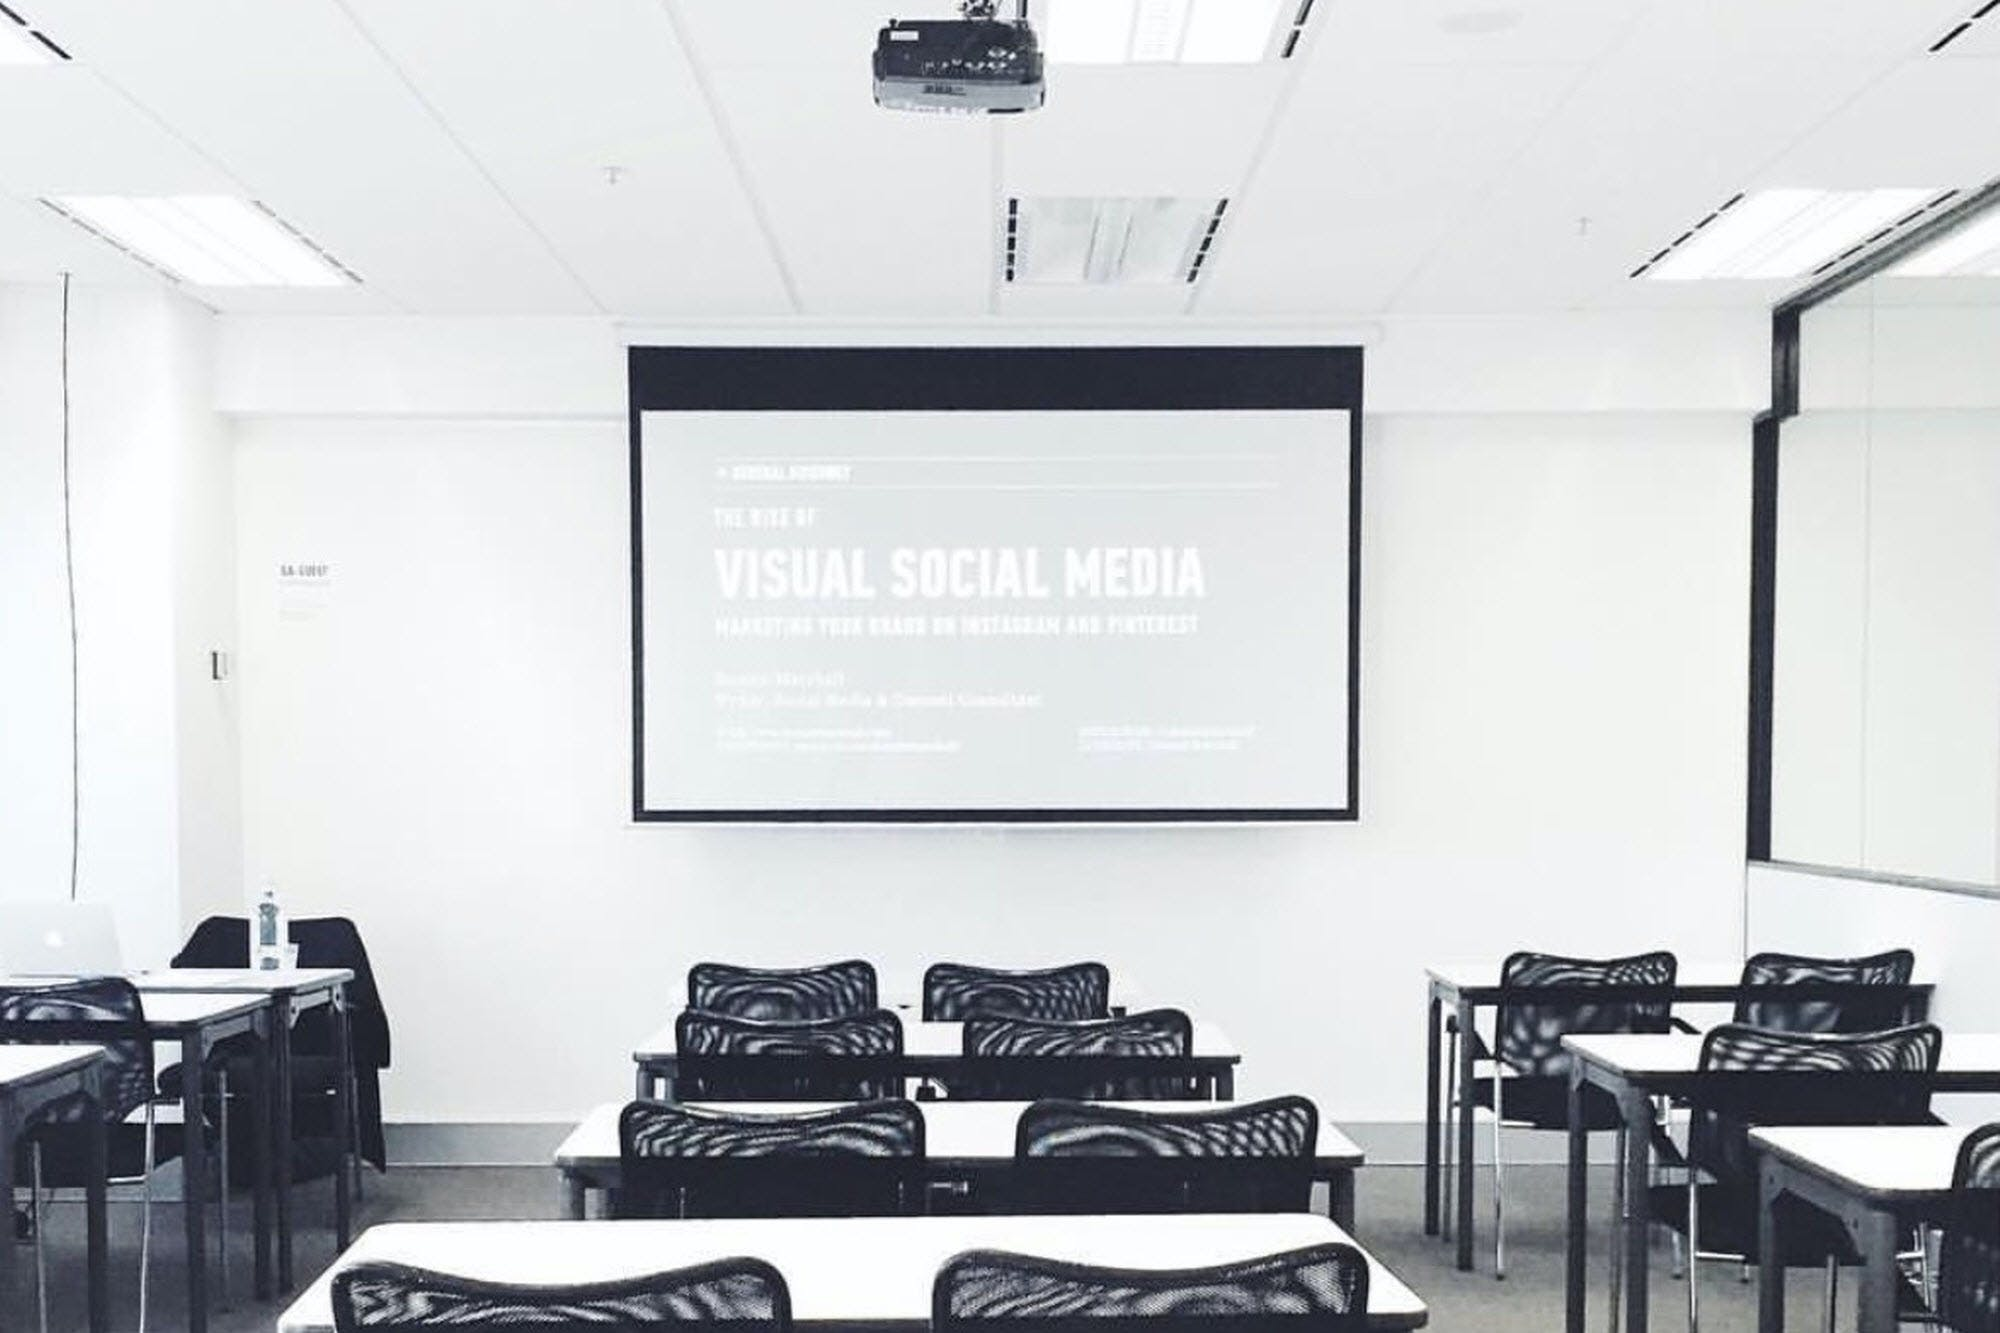 Classroom 5, training room at General Assembly, image 1